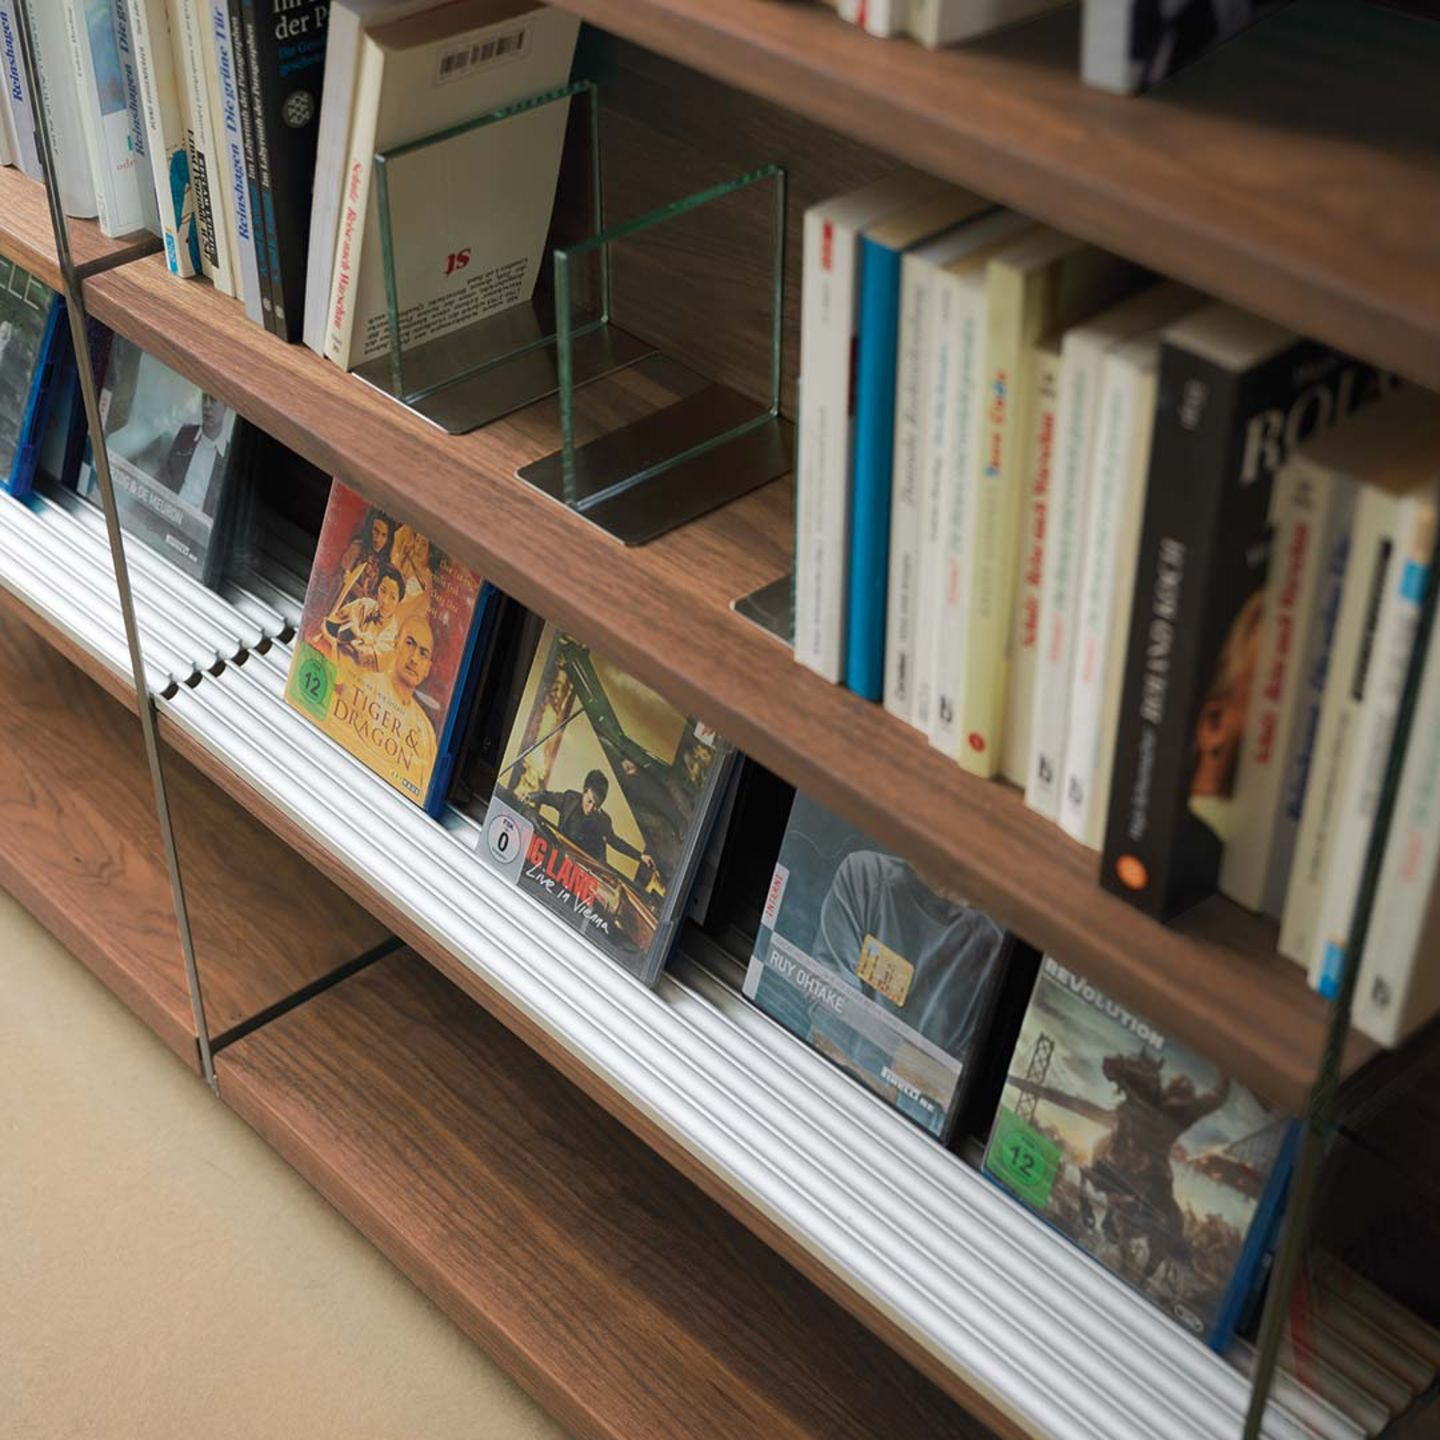 cubus shelf made of solid wood with CD partitioning